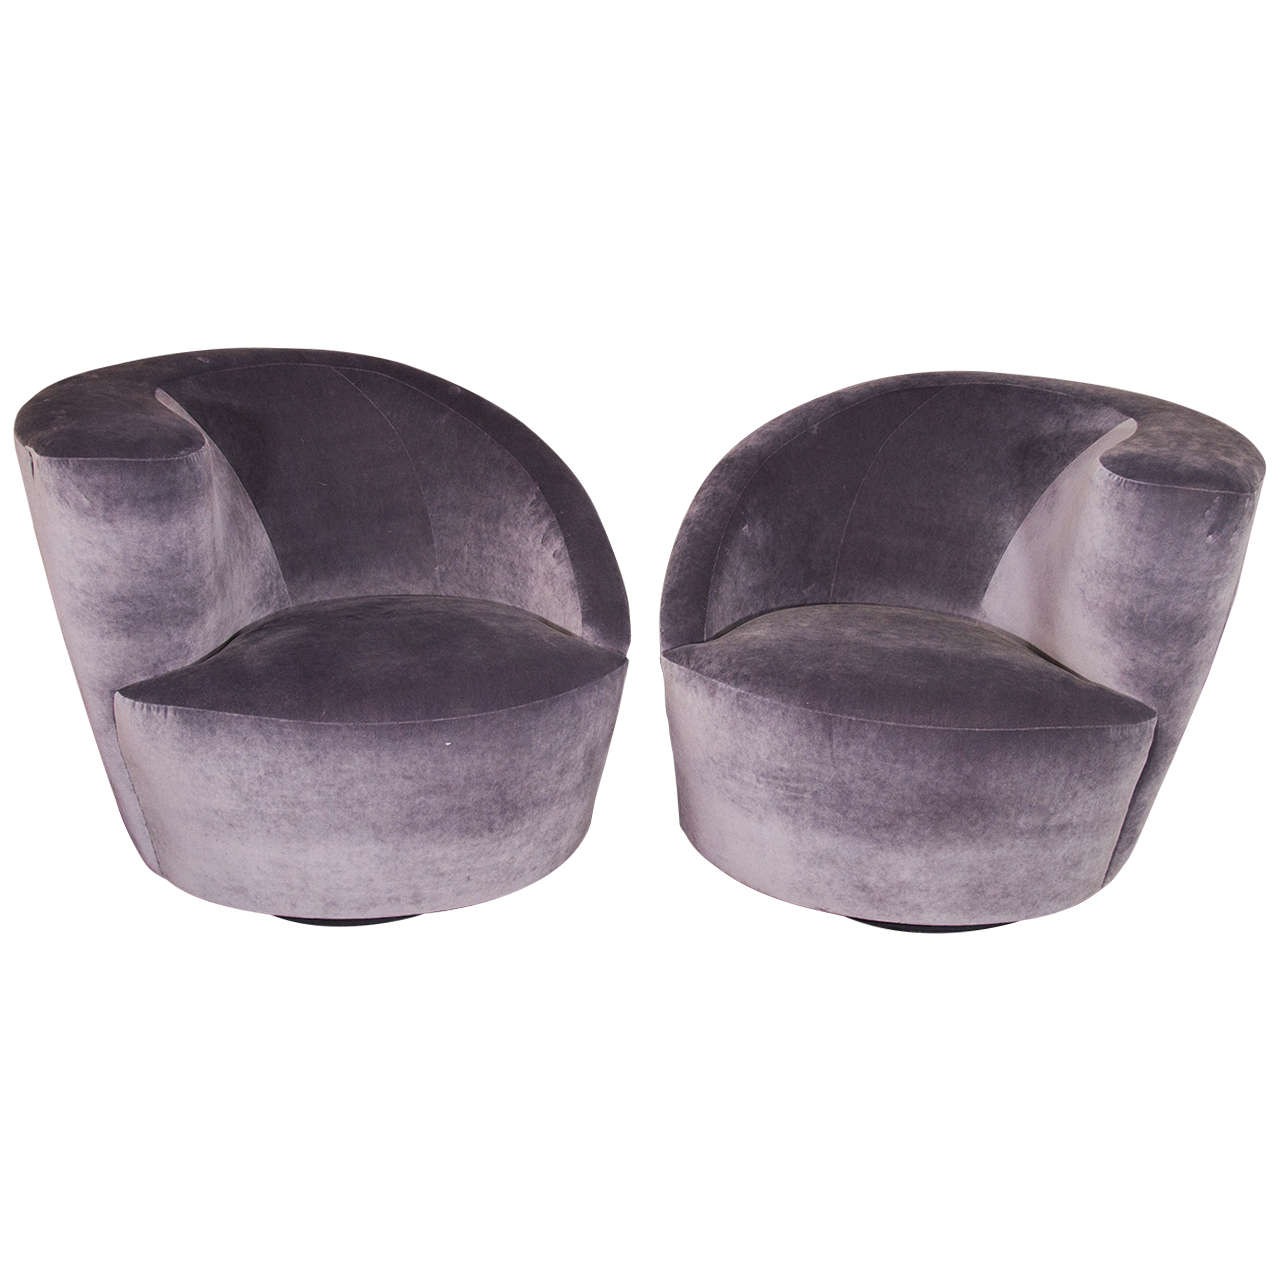 Pair Of 1970s Kagan Asymmetrical Swivel Chairs Upholstered In Charcoal  Velvet For Sale